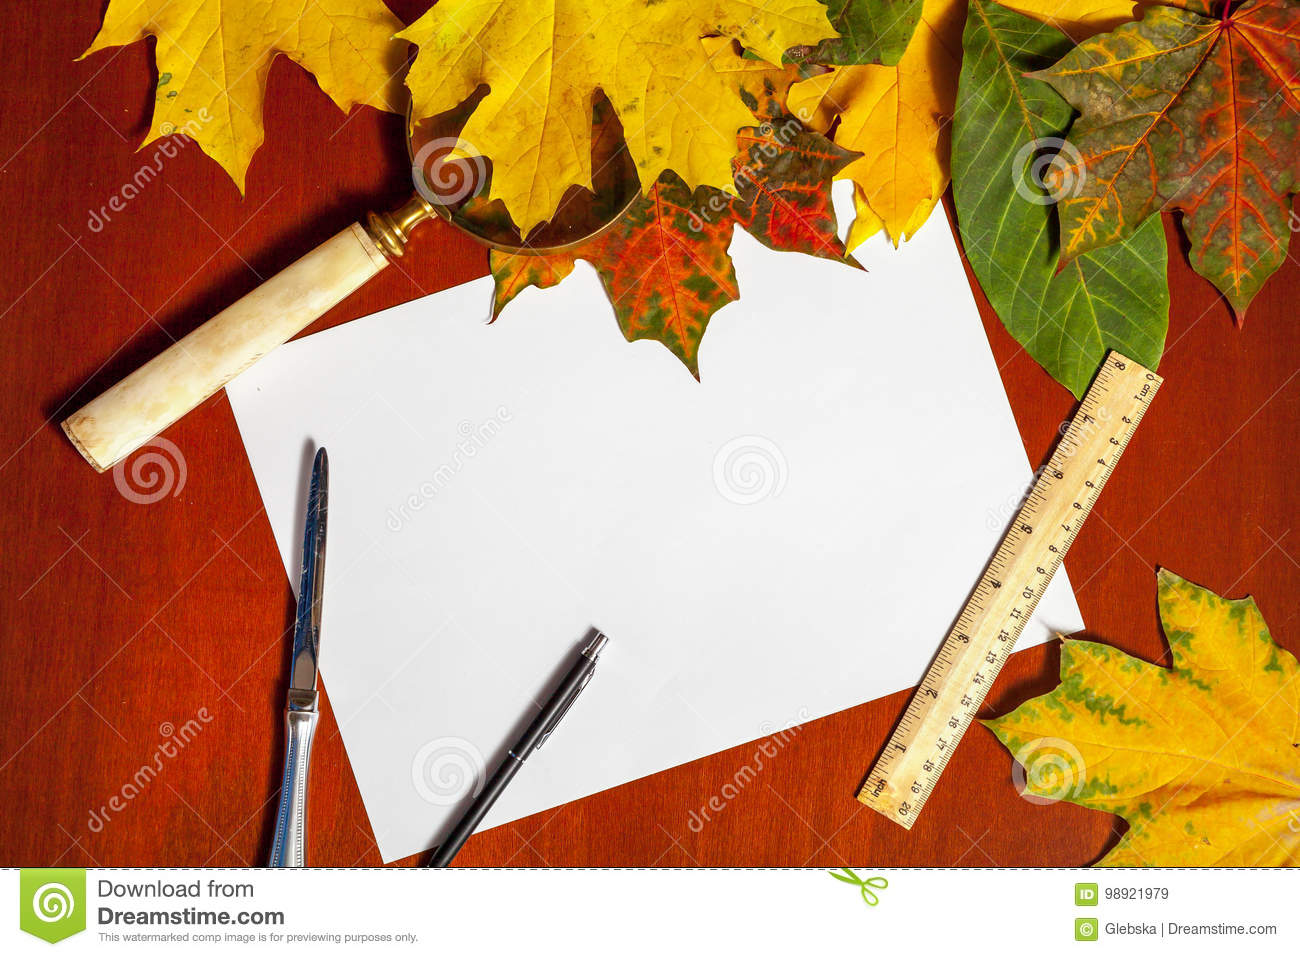 autumn stationery set fallen maple leaves and stationery items